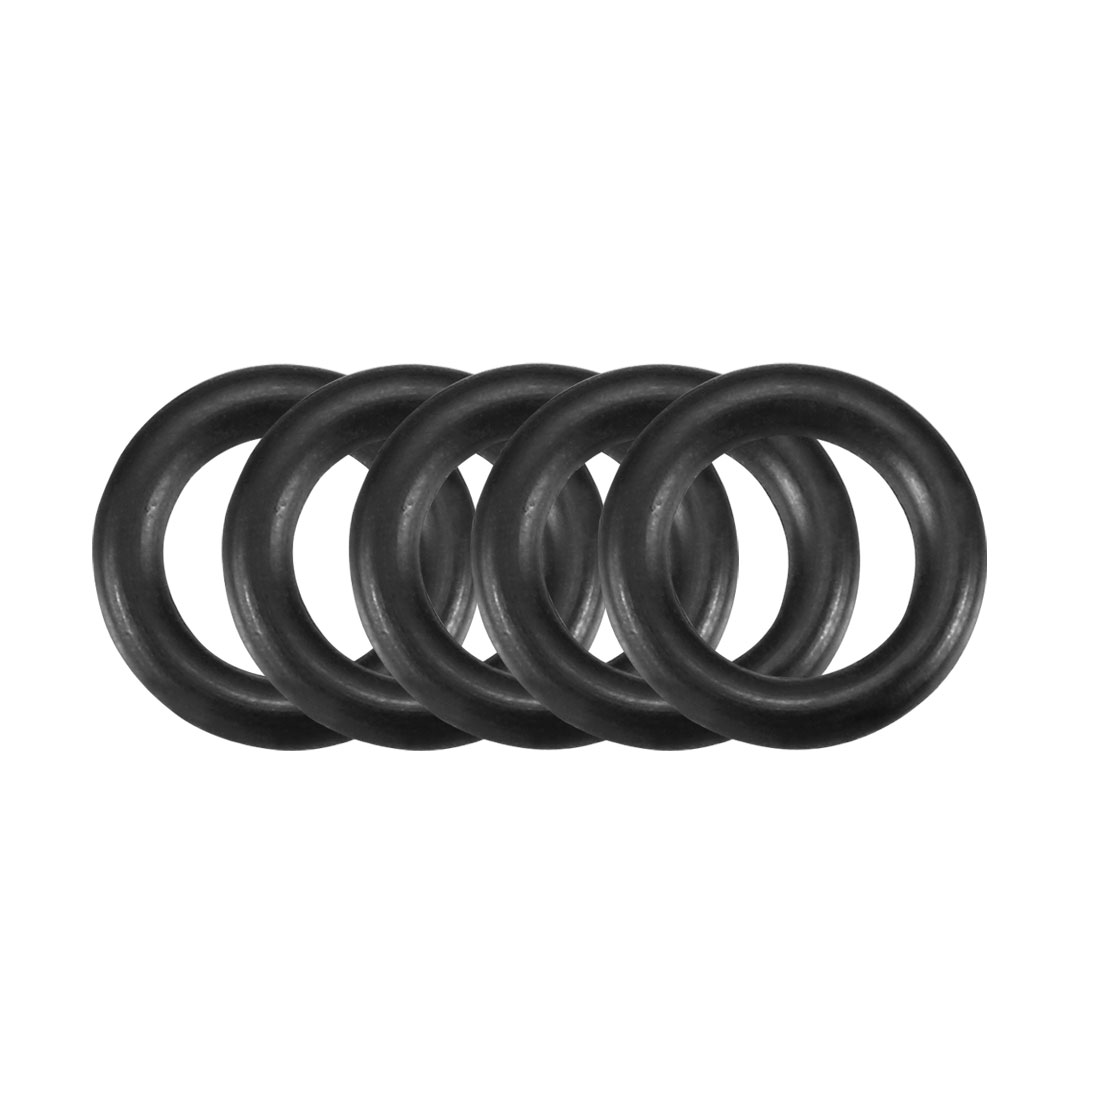 30Pcs Black 10mm Dia 2mm Thickness Nitrile Rubber O Ring NBR Sealing Grommets